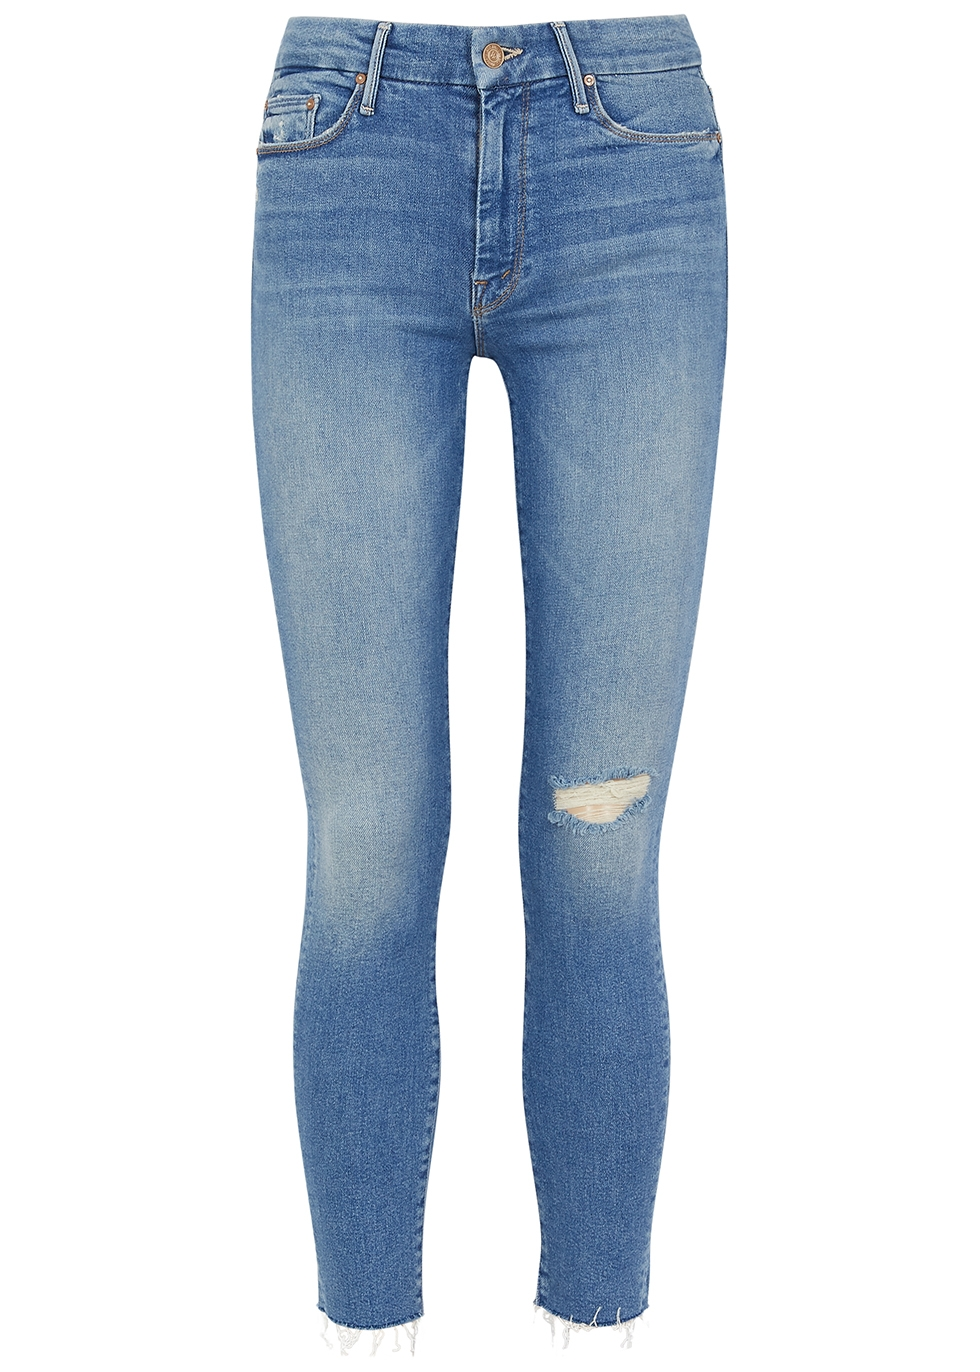 The Looker light blue skinny jeans